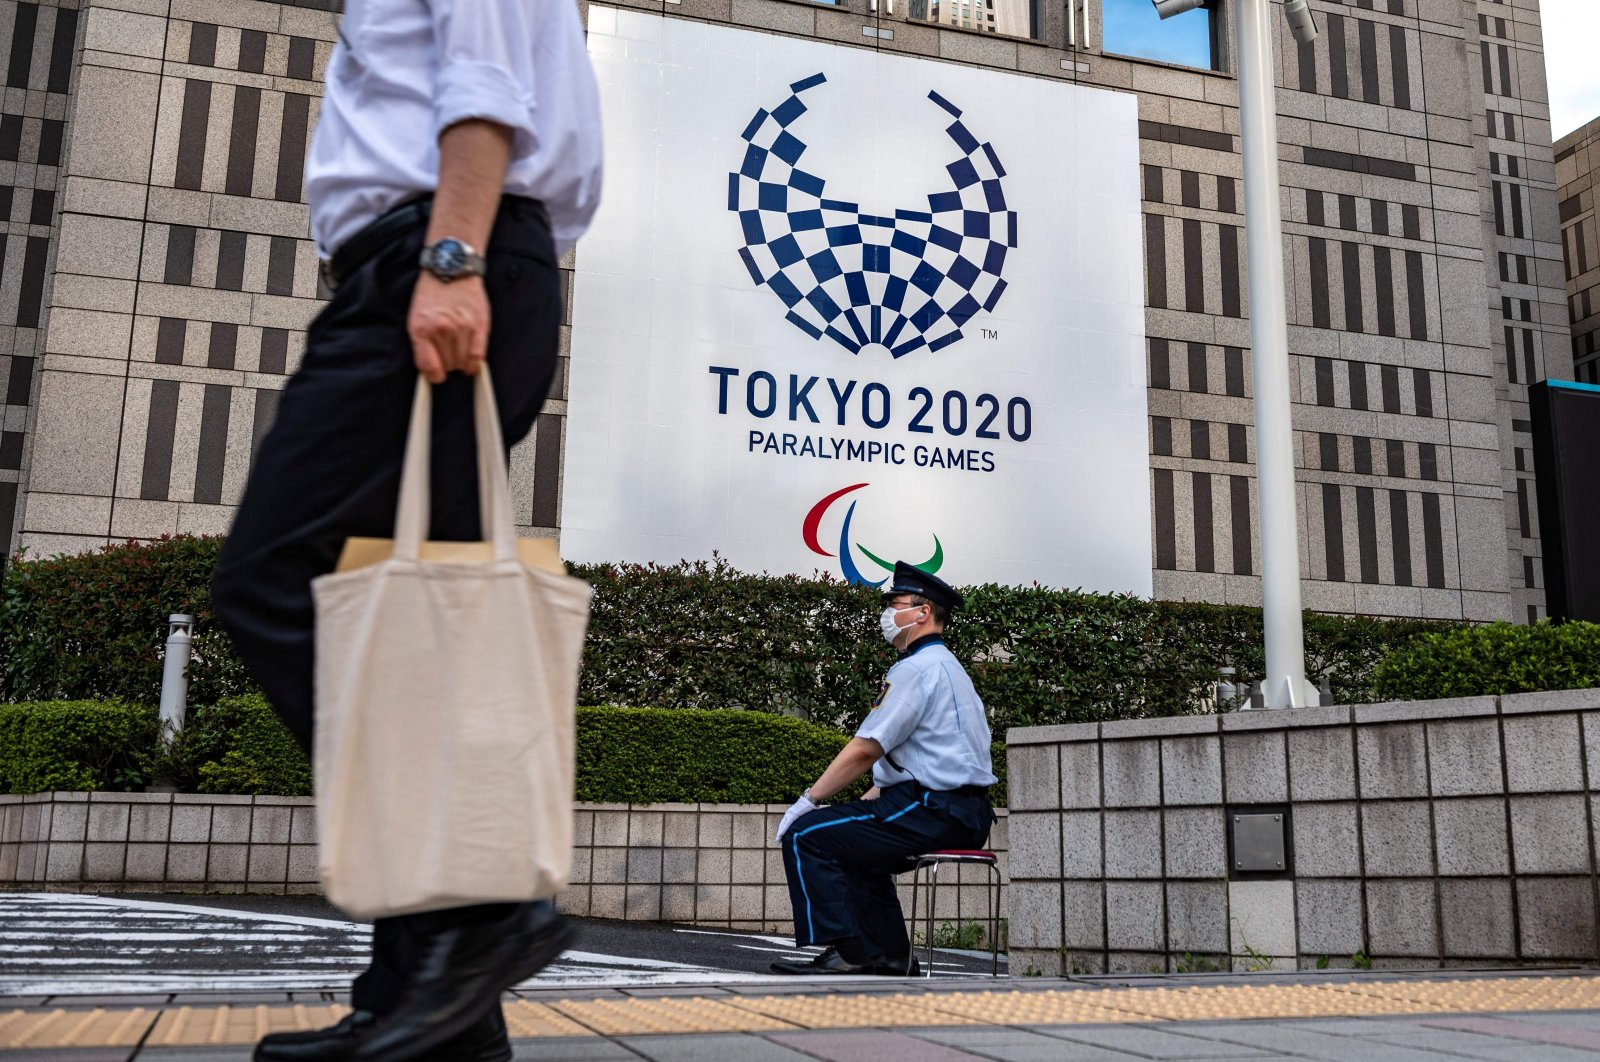 A pedestrian walks past as a security guard sits in front of a Tokyo 2020 Paralympic Games banner at the entrance to the Metropolitan Government Building, Tokyo, Japan, Aug. 19, 2021. (AFP Photo)